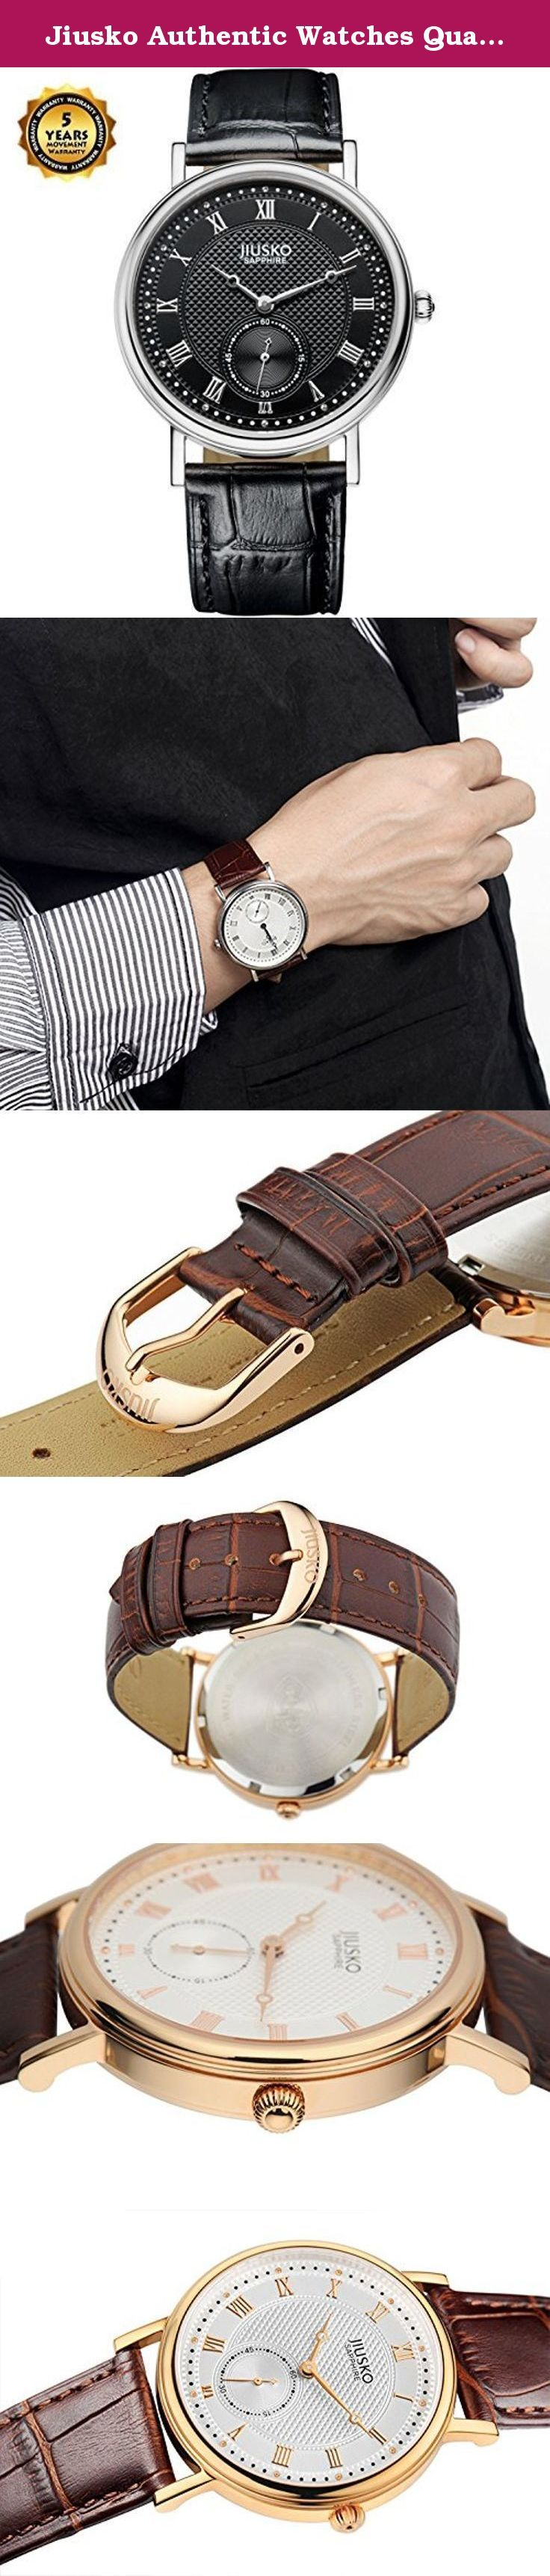 Jiusko Authentic Watches Quartz Movement Sapphire Crystal Roman Numerals Water Resistant Stainless Steel Genuine Leather Black Leather Strap Luxury Watches Best Mens Watches. The JIUSKO Elegant Collection-Classic design meets today's technology for an authentic designer watch that's made to please, and made to last! A simple, three-hand watch that looks as great peeking out of the cuff of a tuxedo as it does dressed down with a T-shirt and jeans. Crafted from surgical grade stainless…